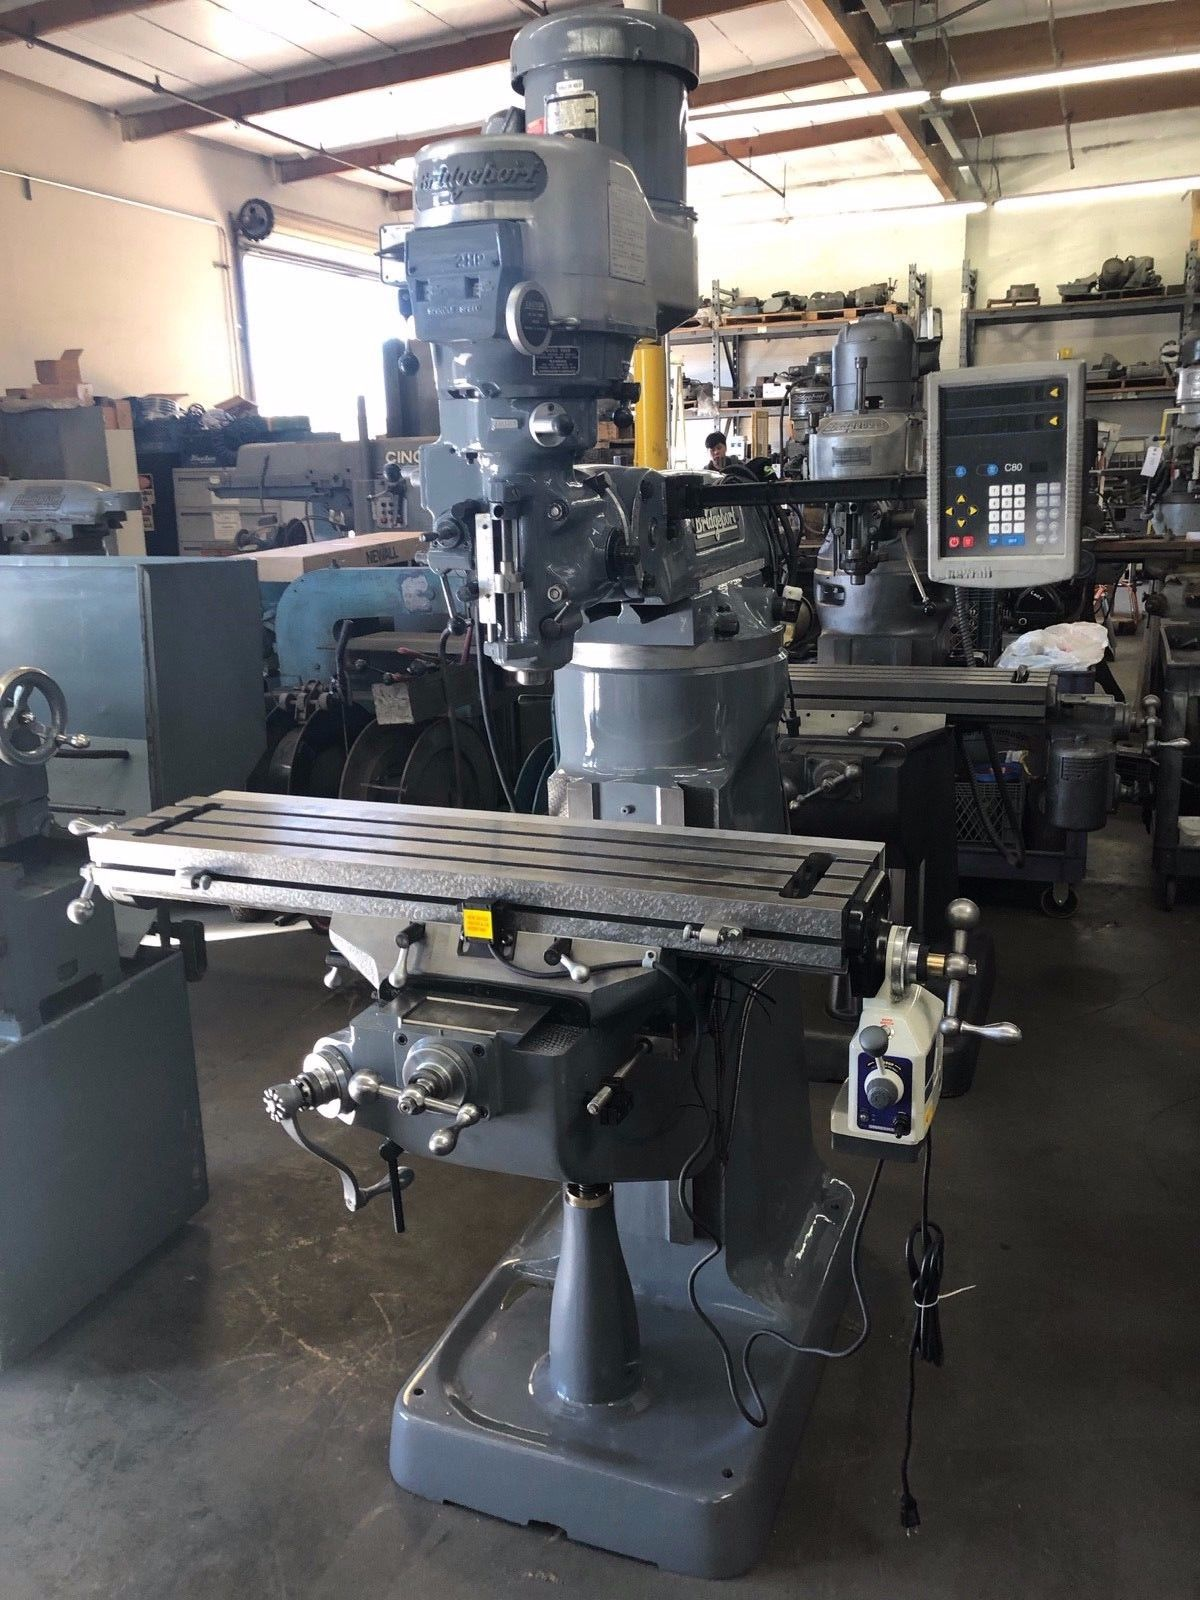 Milling Machine For Sale >> Used Manufacturing Equipment For Sale Anaheim California